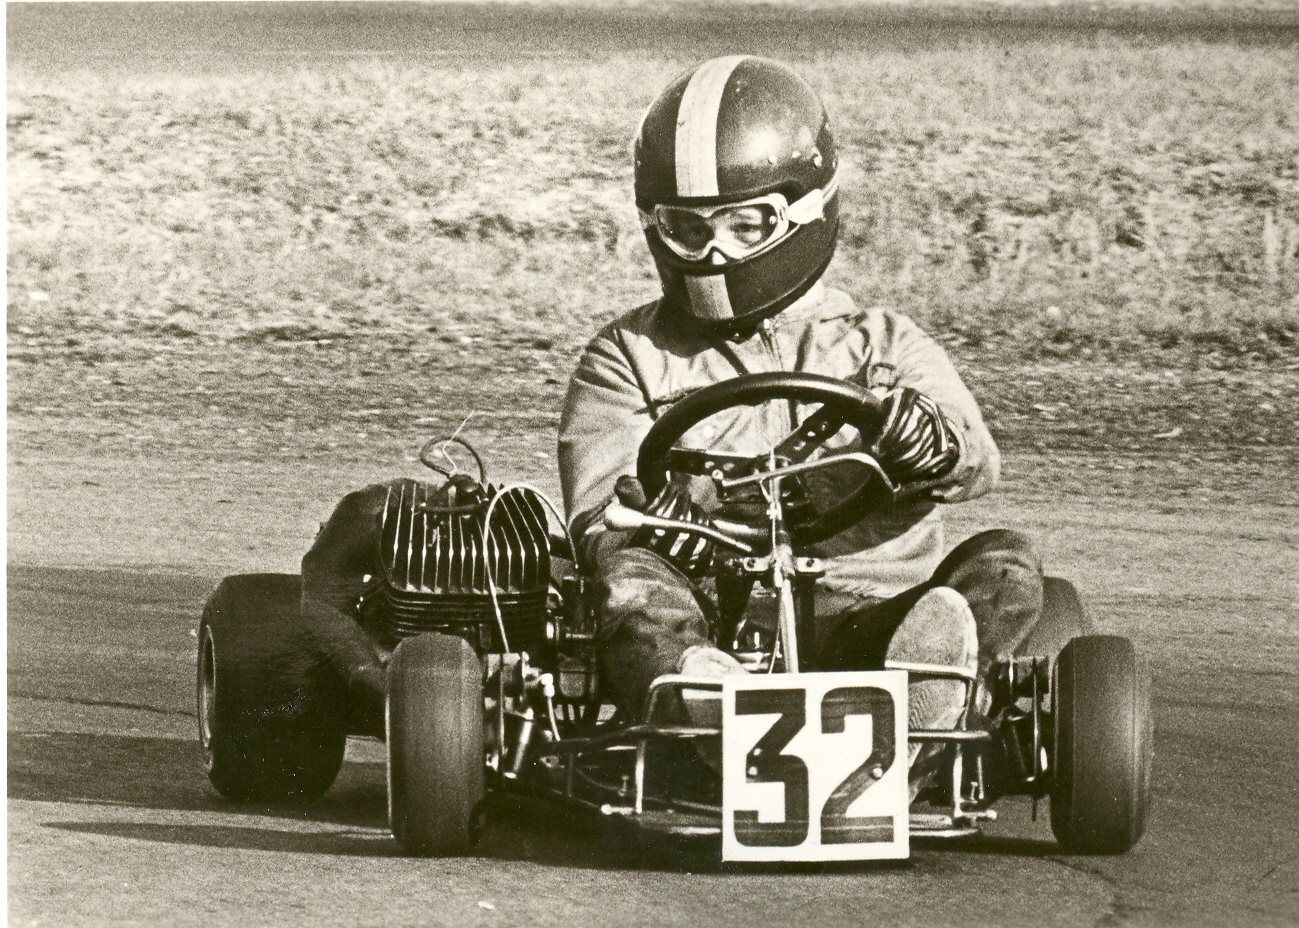 History of Rotax Karting